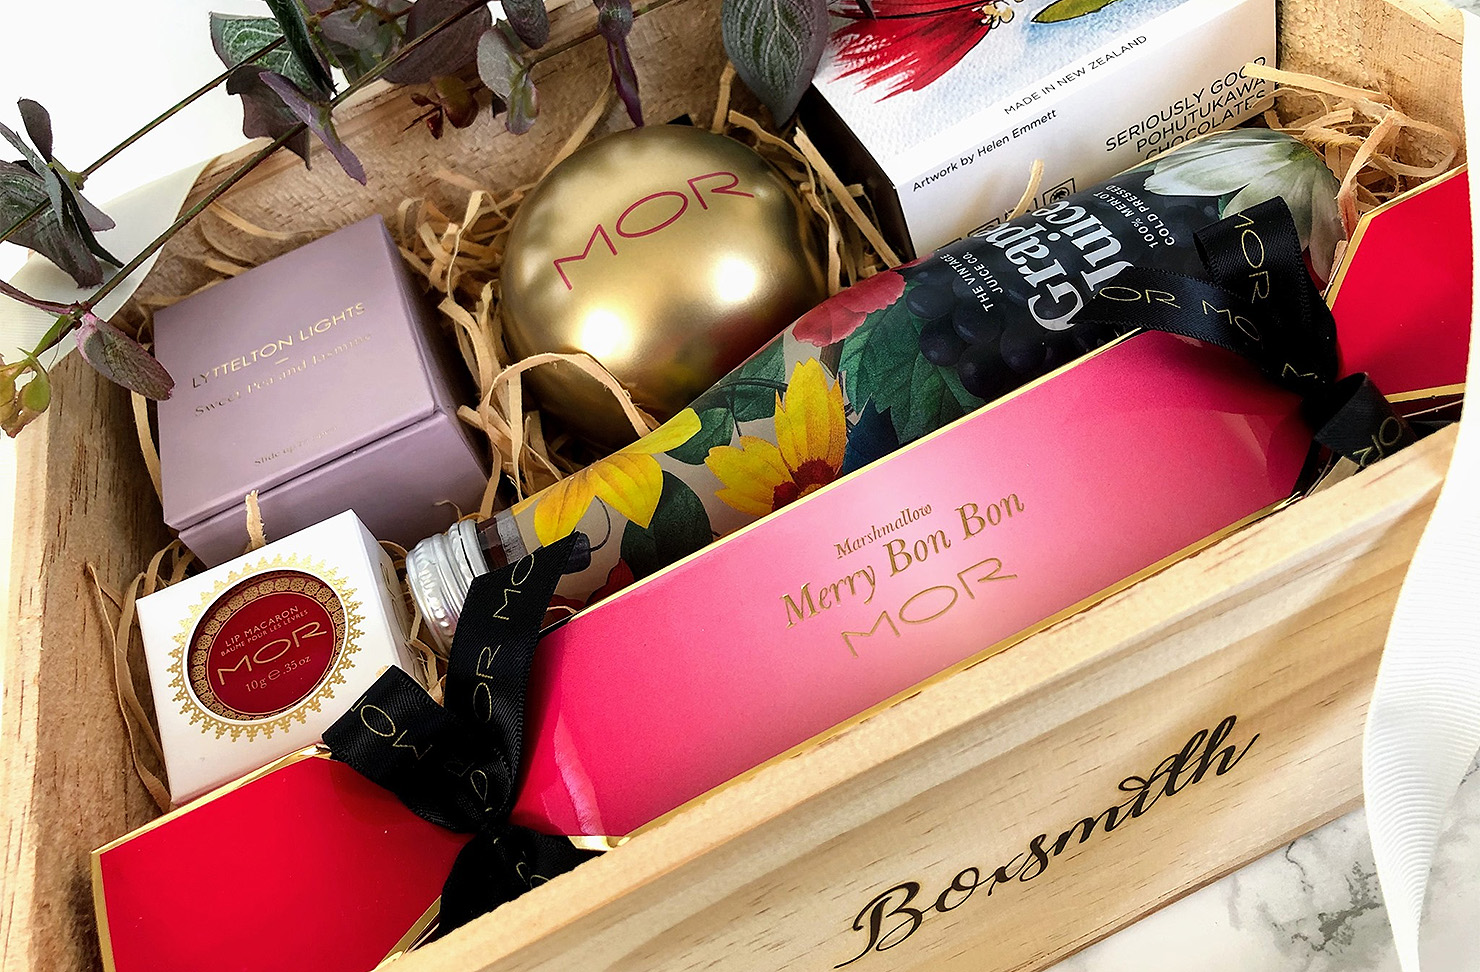 A Christmas gift box from Boxsmith showing a packed box of goodies for Christmastime.